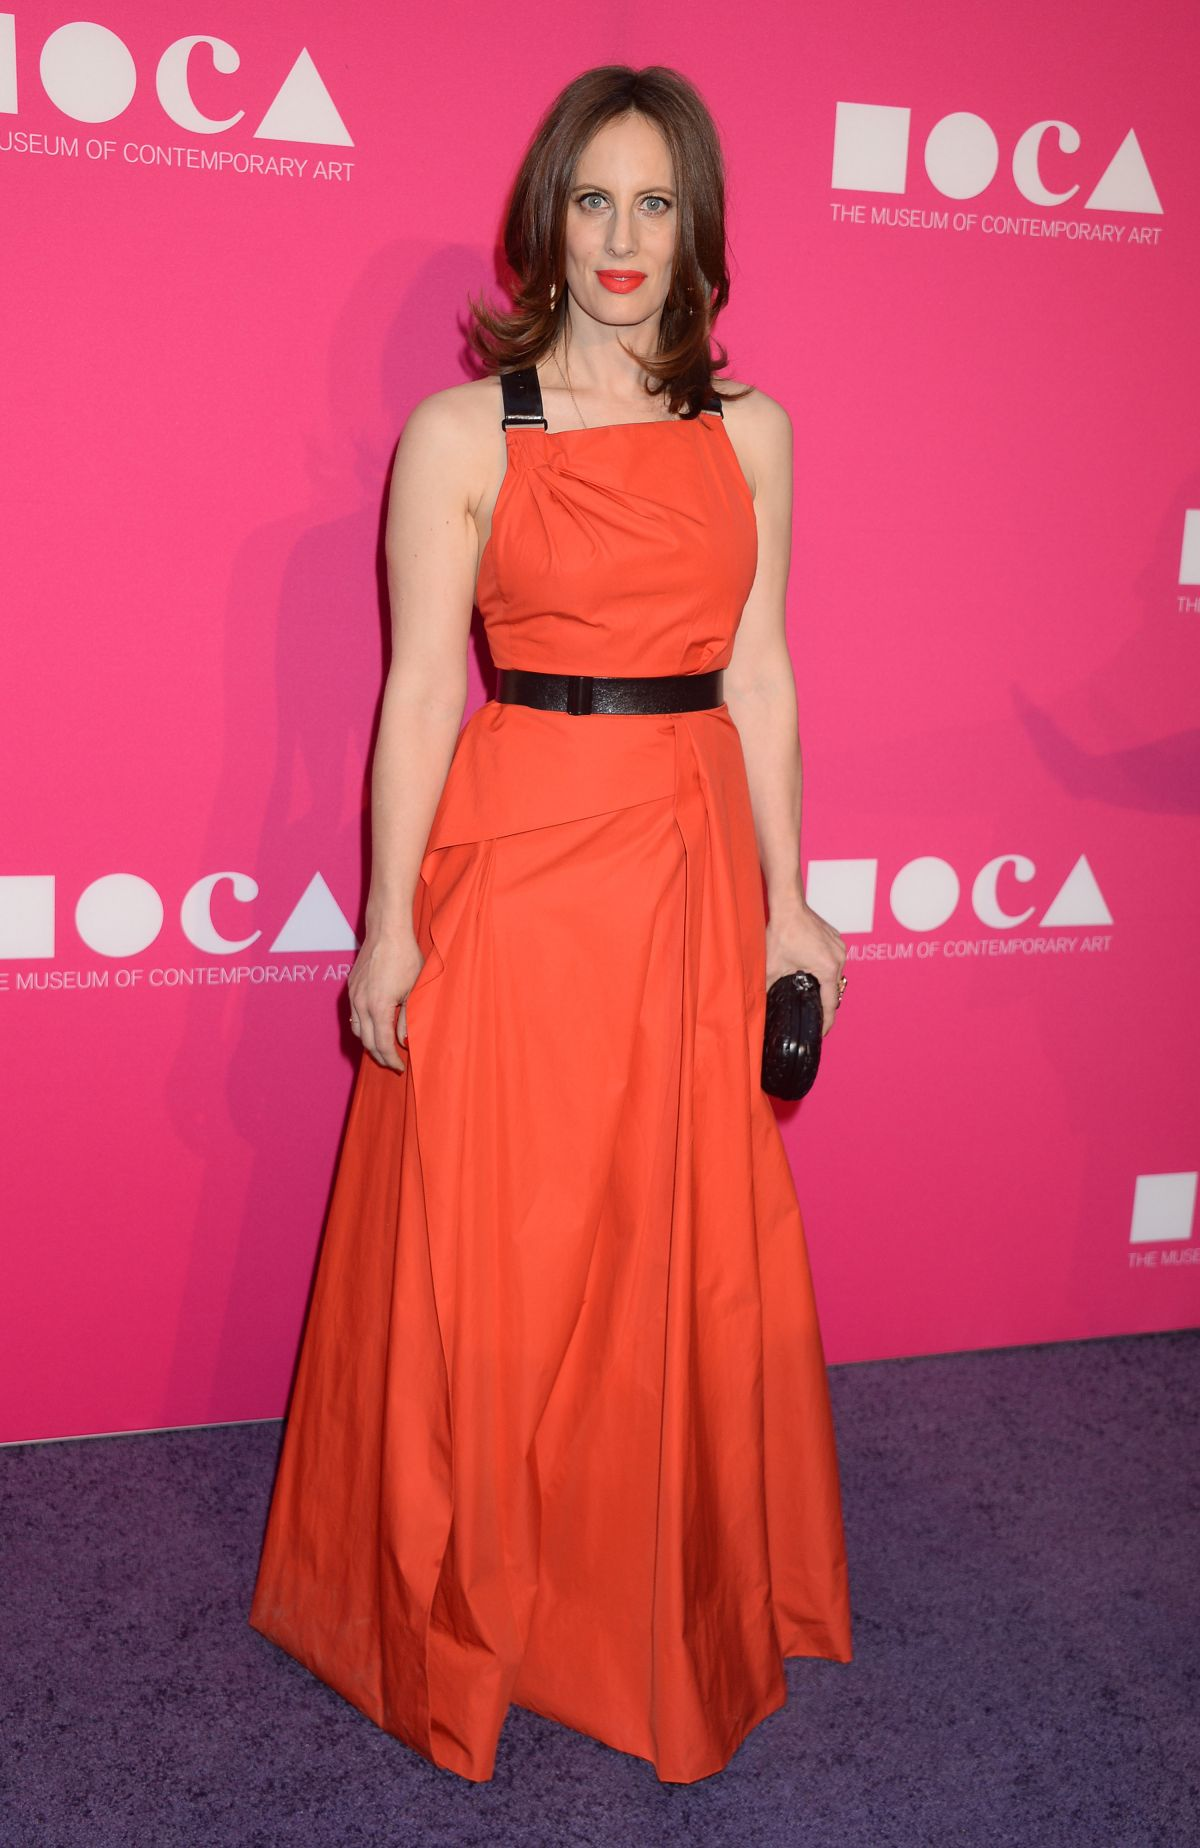 LIZ GOOLDWYN at Moca Gala Honoring Jeff Koons in Los Angeles 04/29/2017